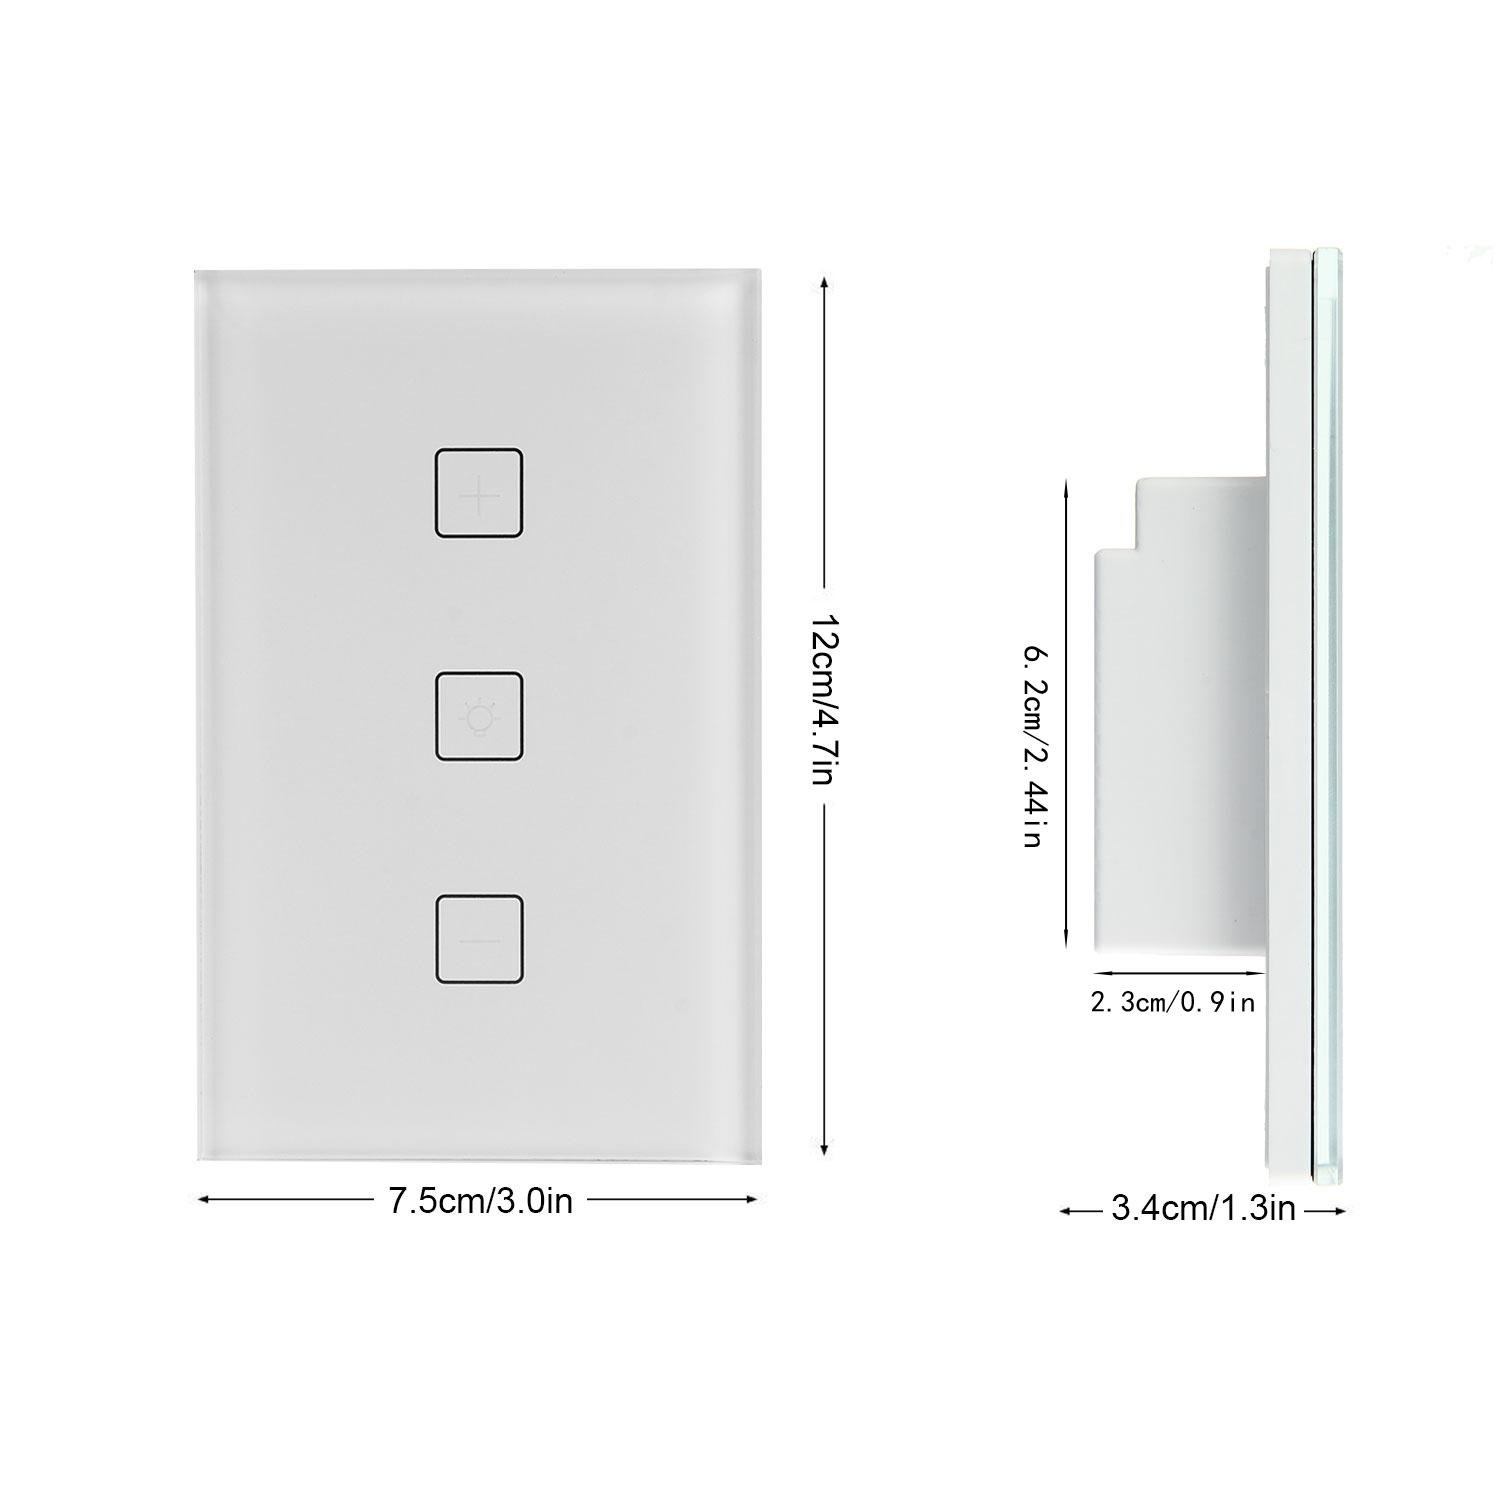 FOONEE Wifi Dimmer Switch, Home Decoration Smart Dimmer Switch with Alexa, Google Home Touch Switch Outlet Wifi Smart Lighting Control for Bedroom, Kitchen, Living Room(Neutral Wiring Required) by FOONEE (Image #2)